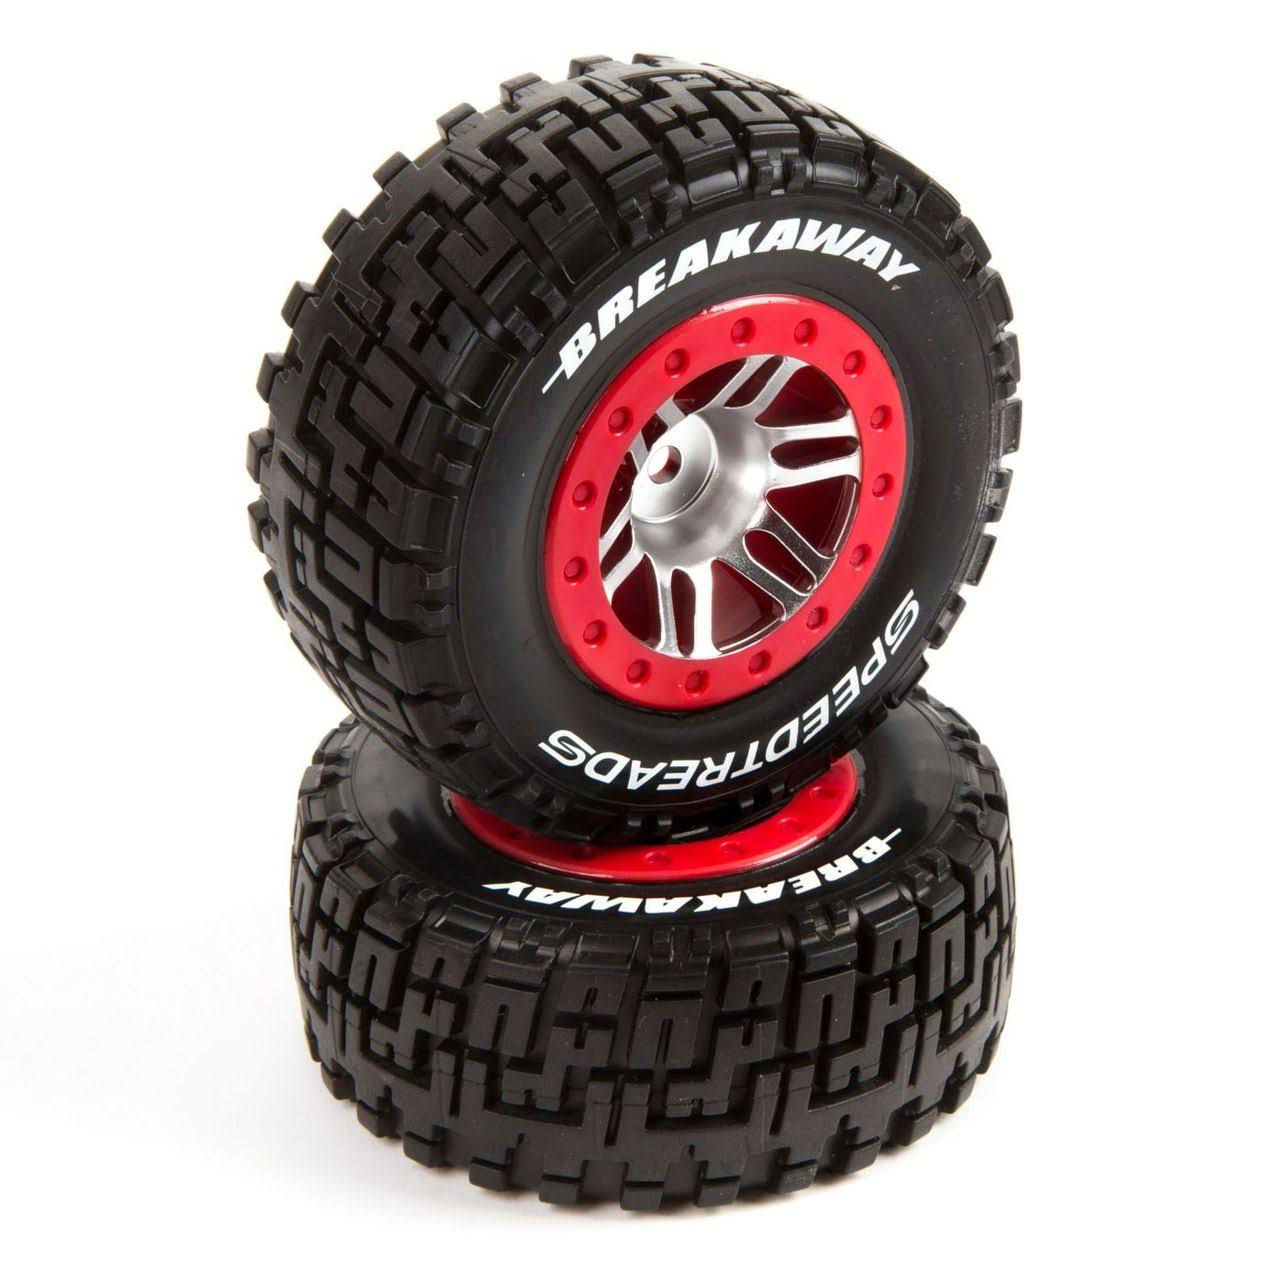 DuraTrax SpeedTreads Breakaway SC Tires